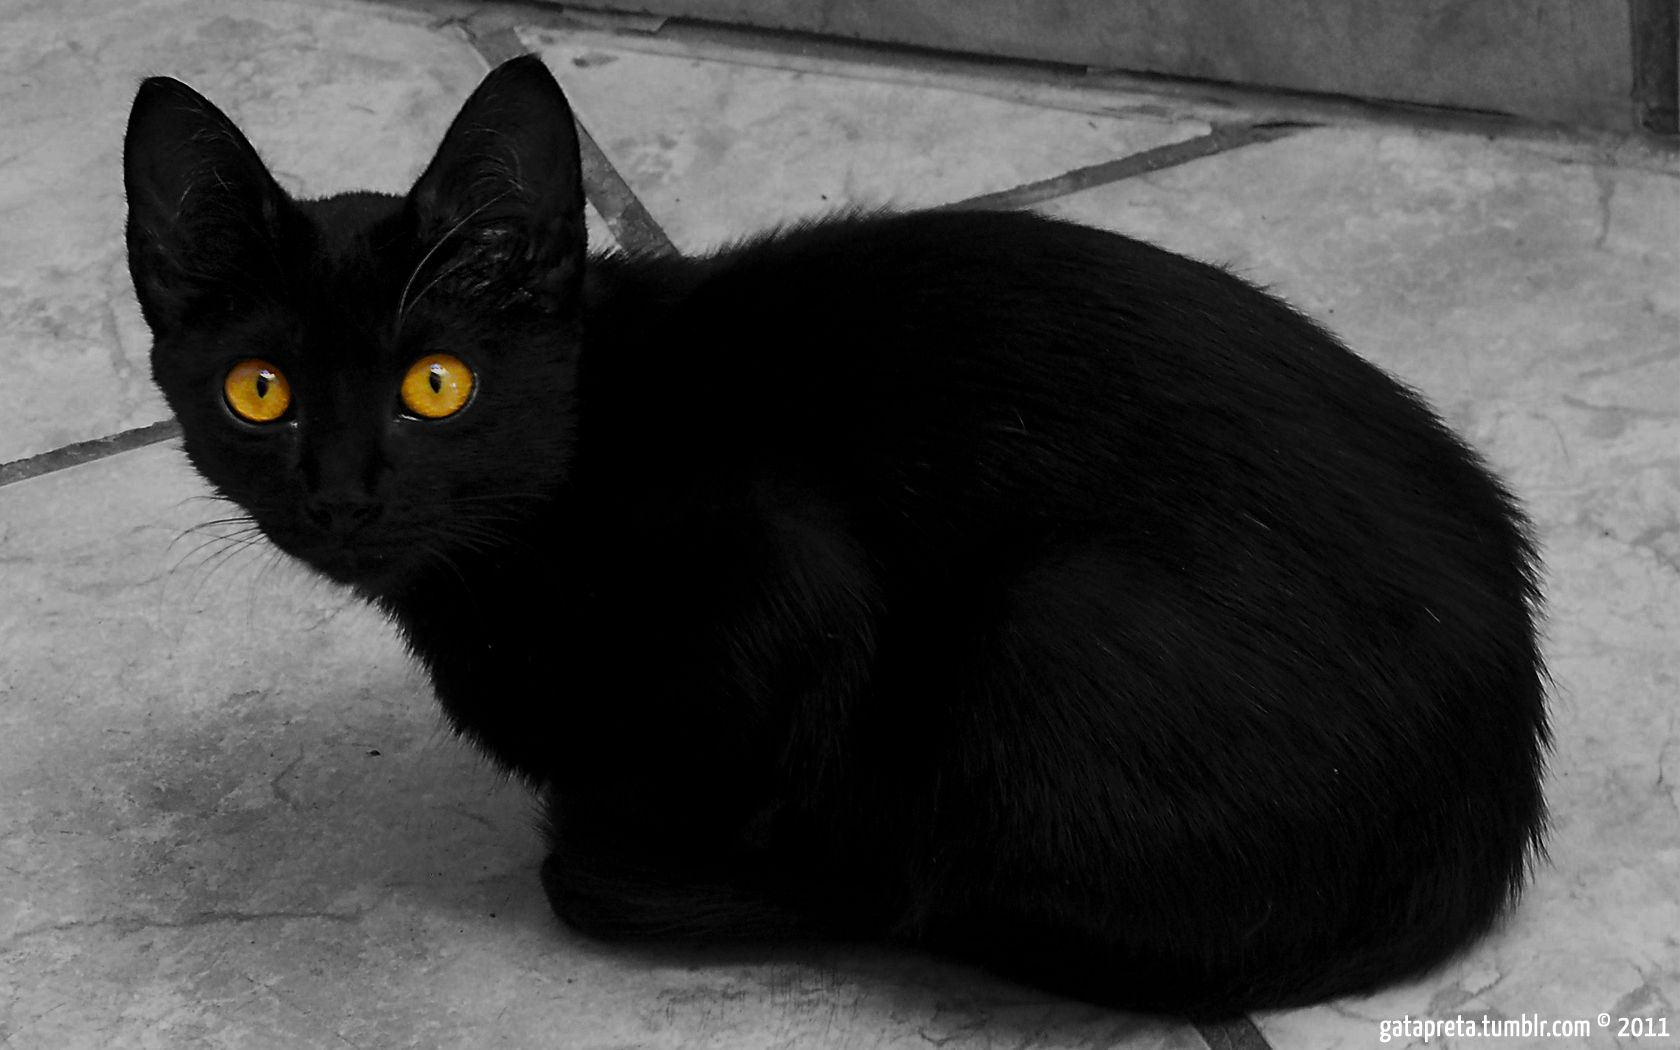 a black cat with yellow eyes!! *check!* Animals are sooo